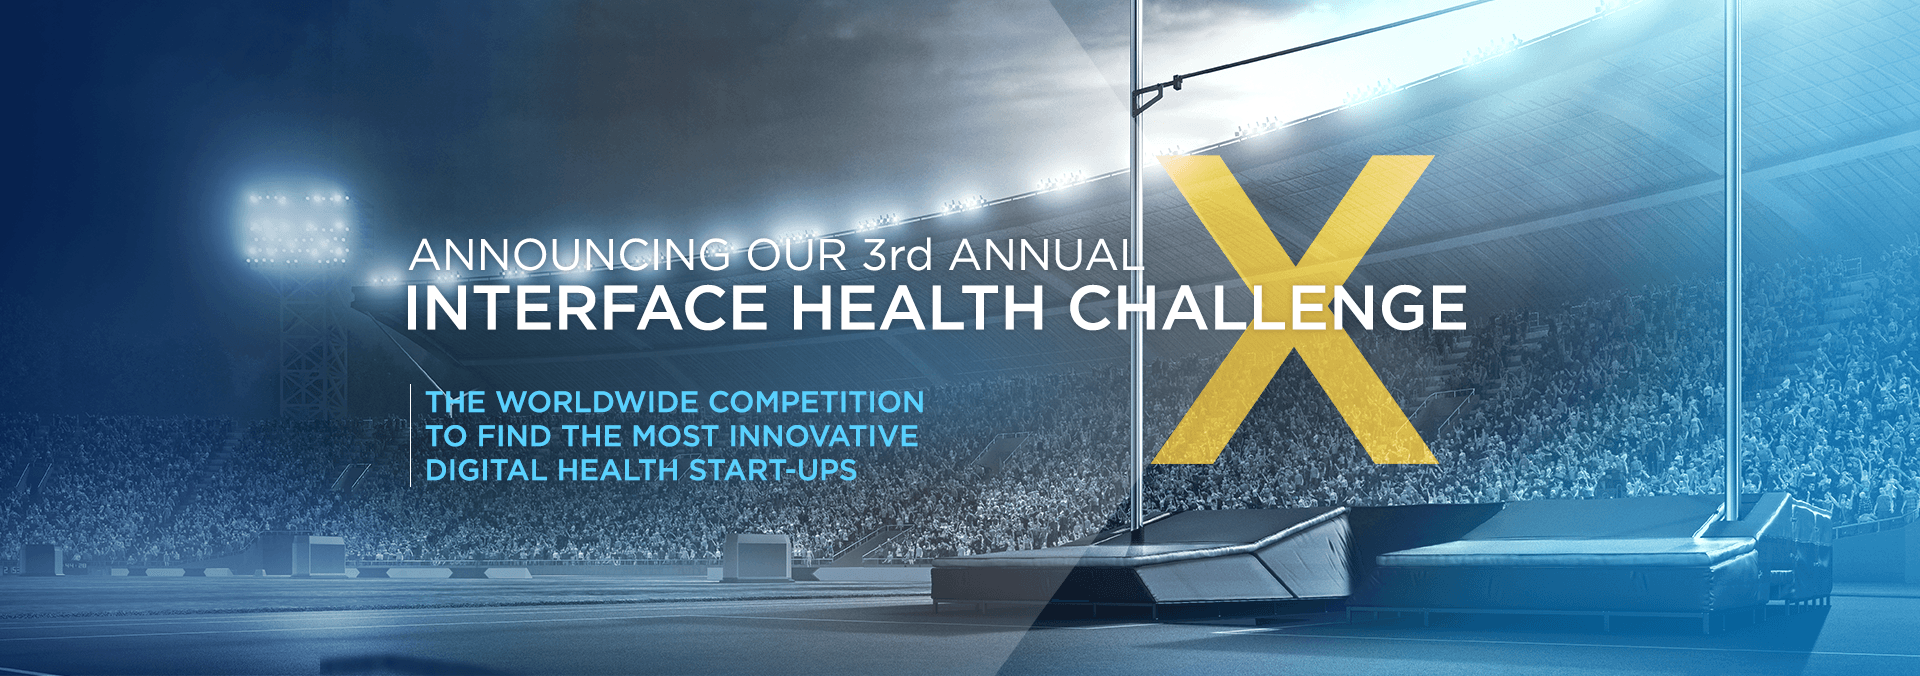 Interface Health Challenge X 2017